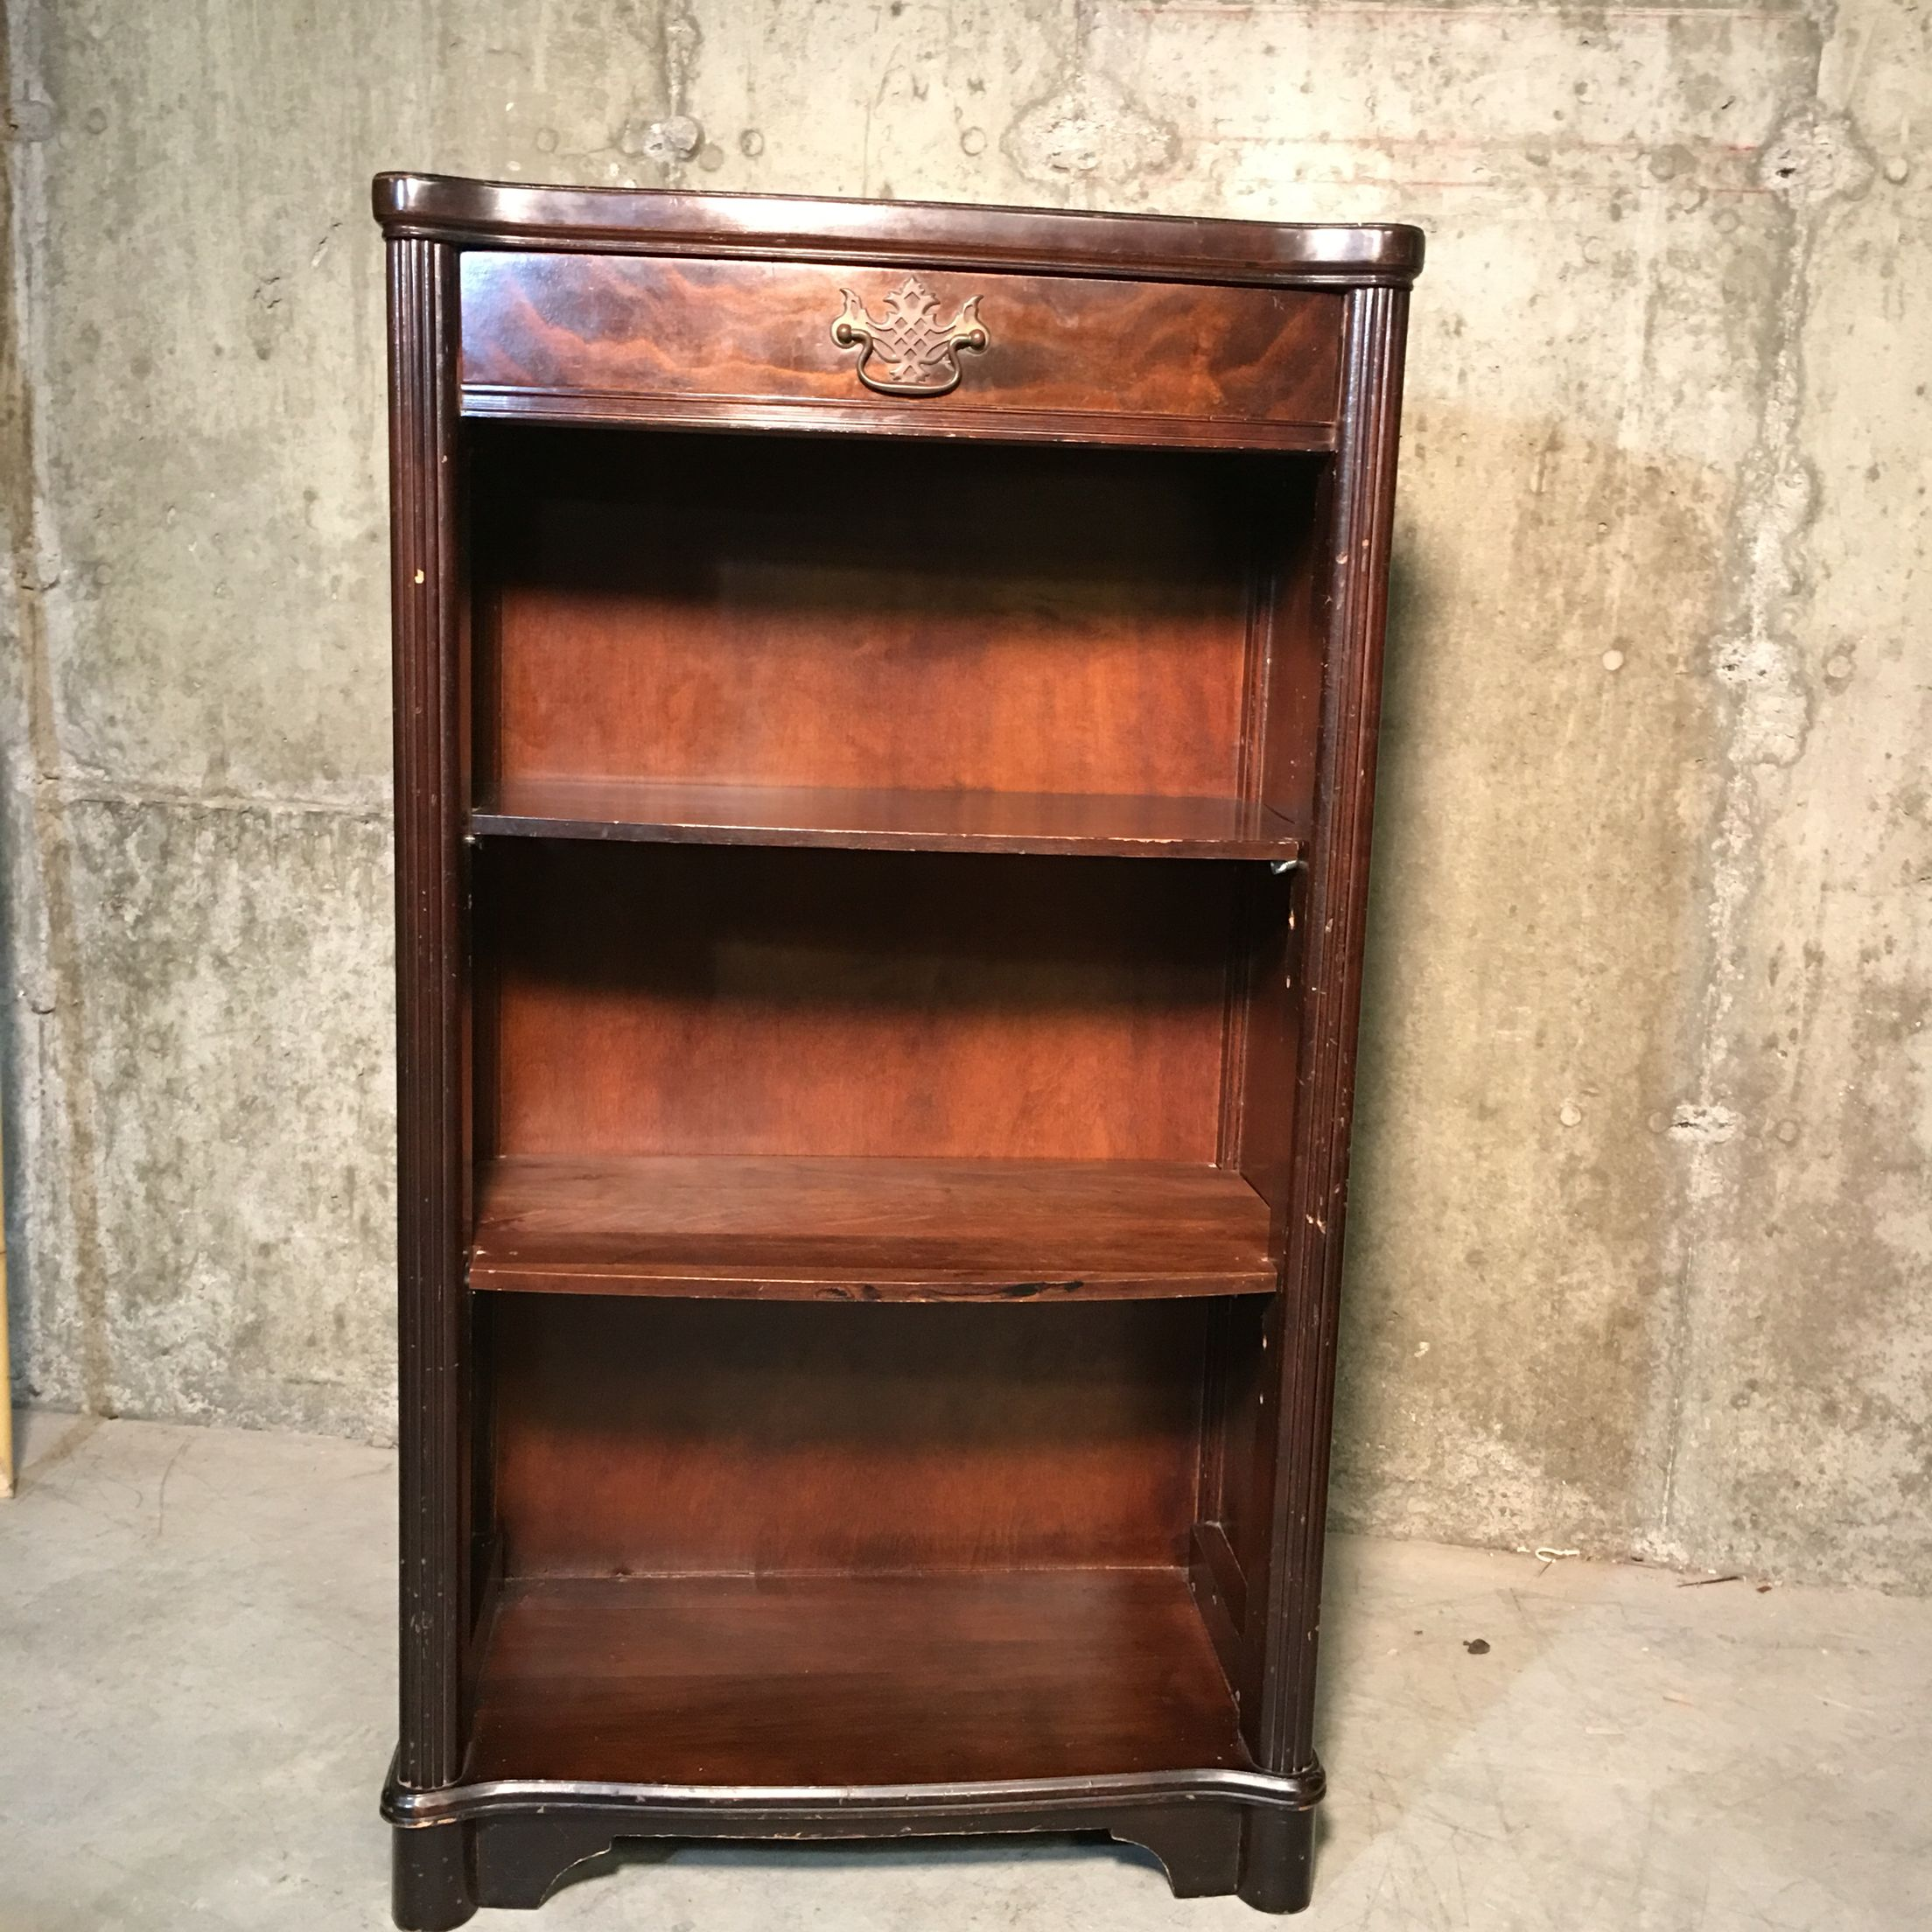 custom furniture match in board set were that bookcase particle all wine long of challenge stined htm stand is wood golden bookcases this part includes television also designs rack small and solid oak piece to wide a lakota maple